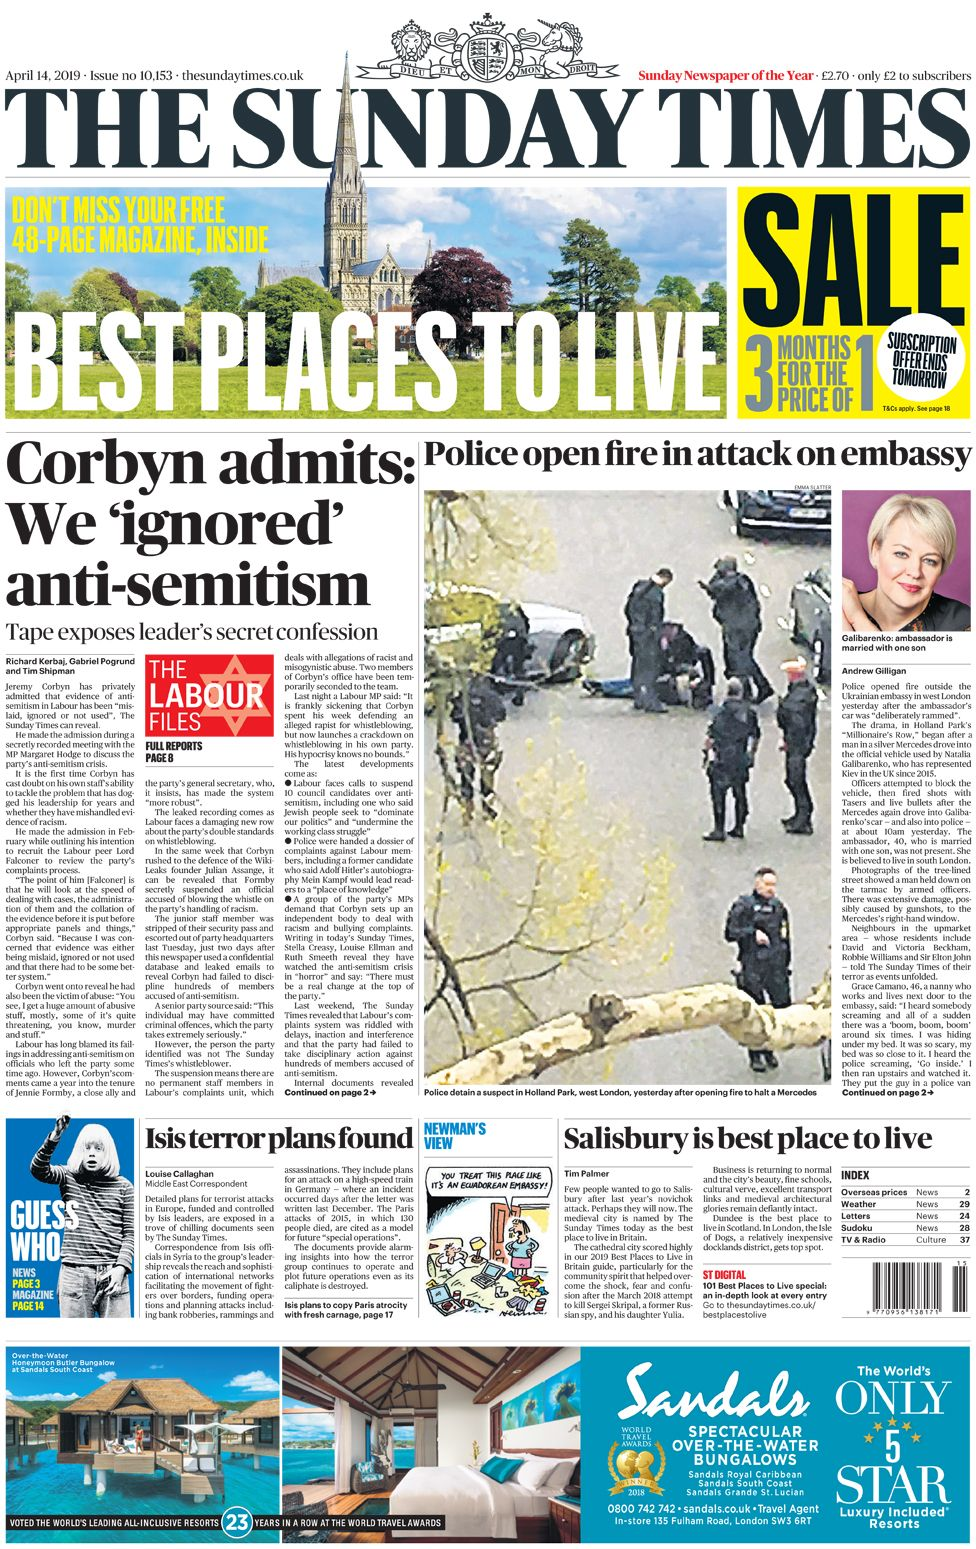 Sunday Times front page, 14/4/19